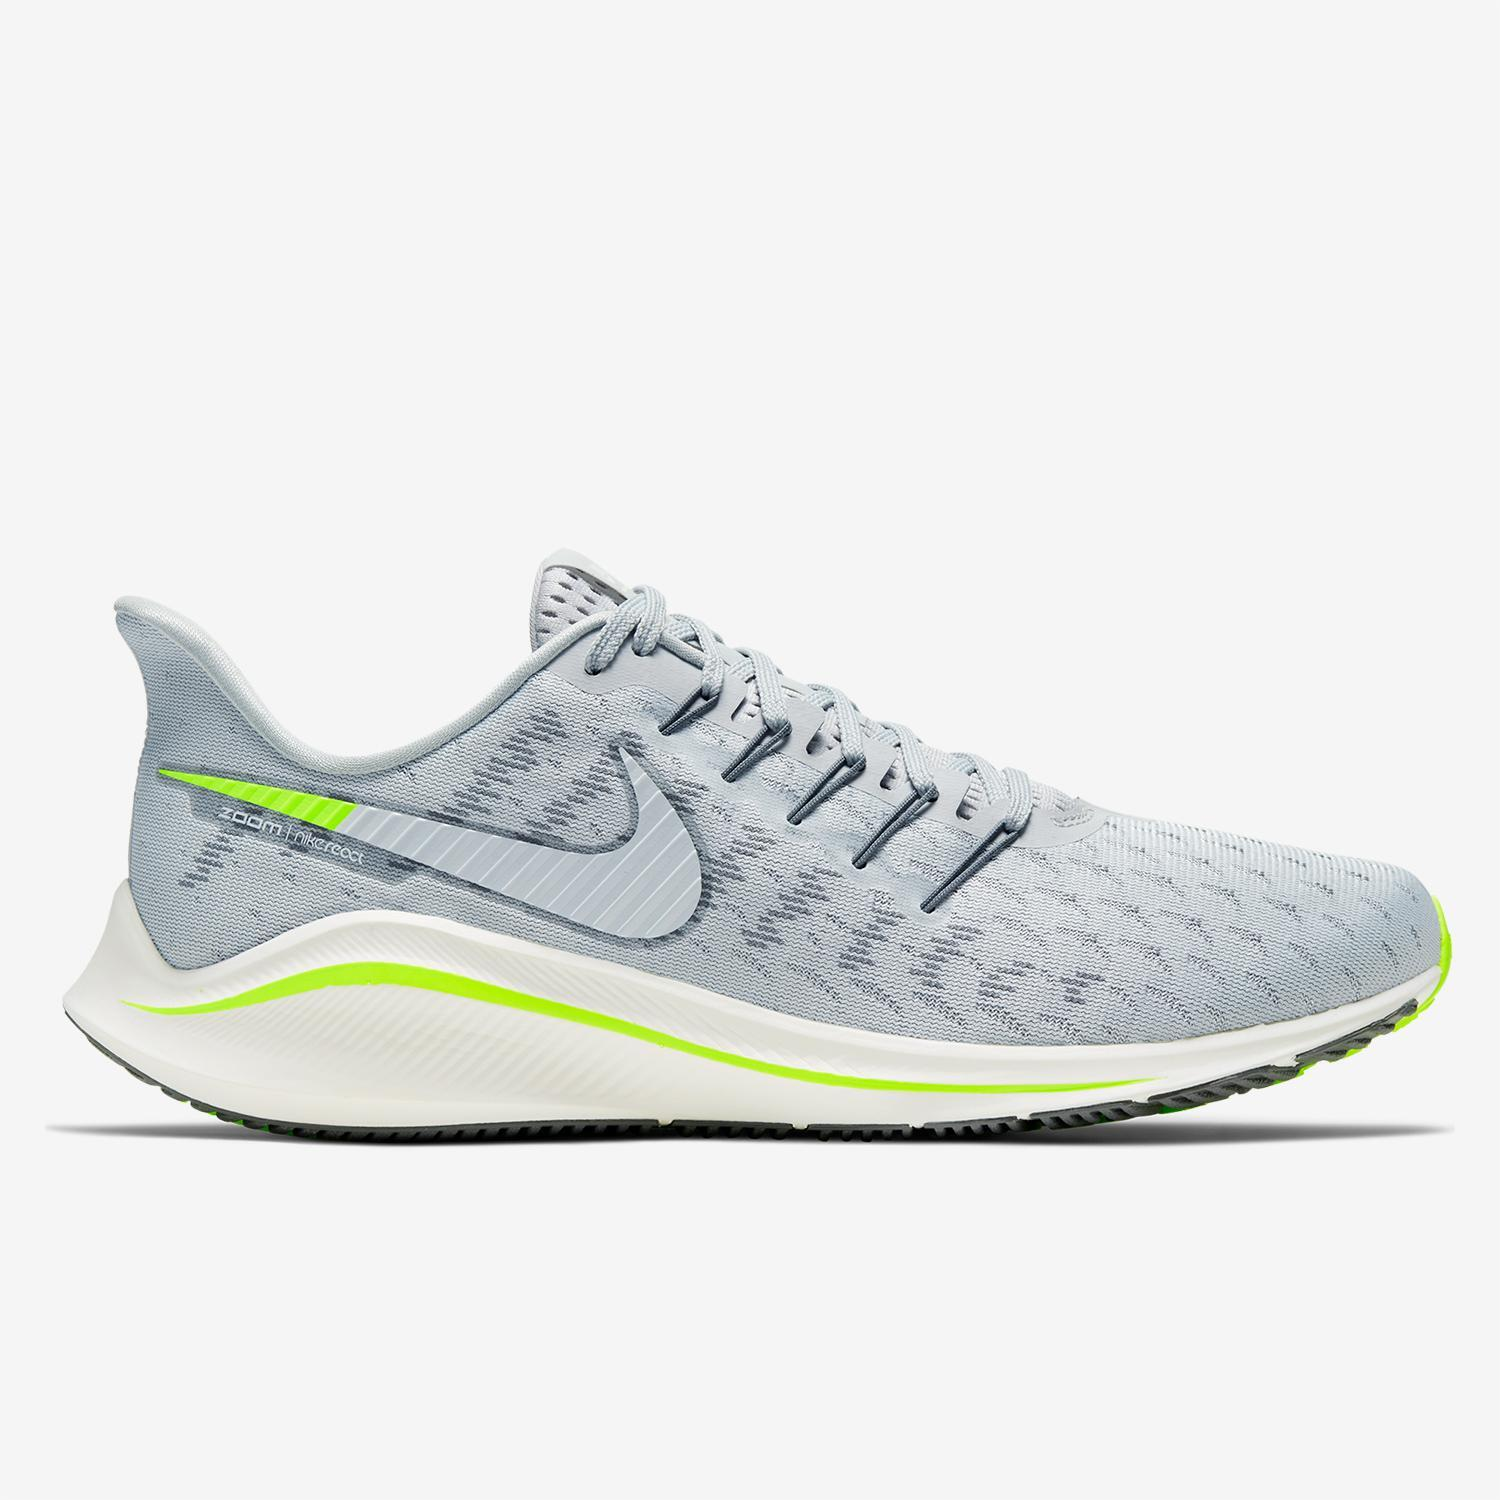 Nike Air Zoom Vomero 14 Grises Zapatillas Running Hombre